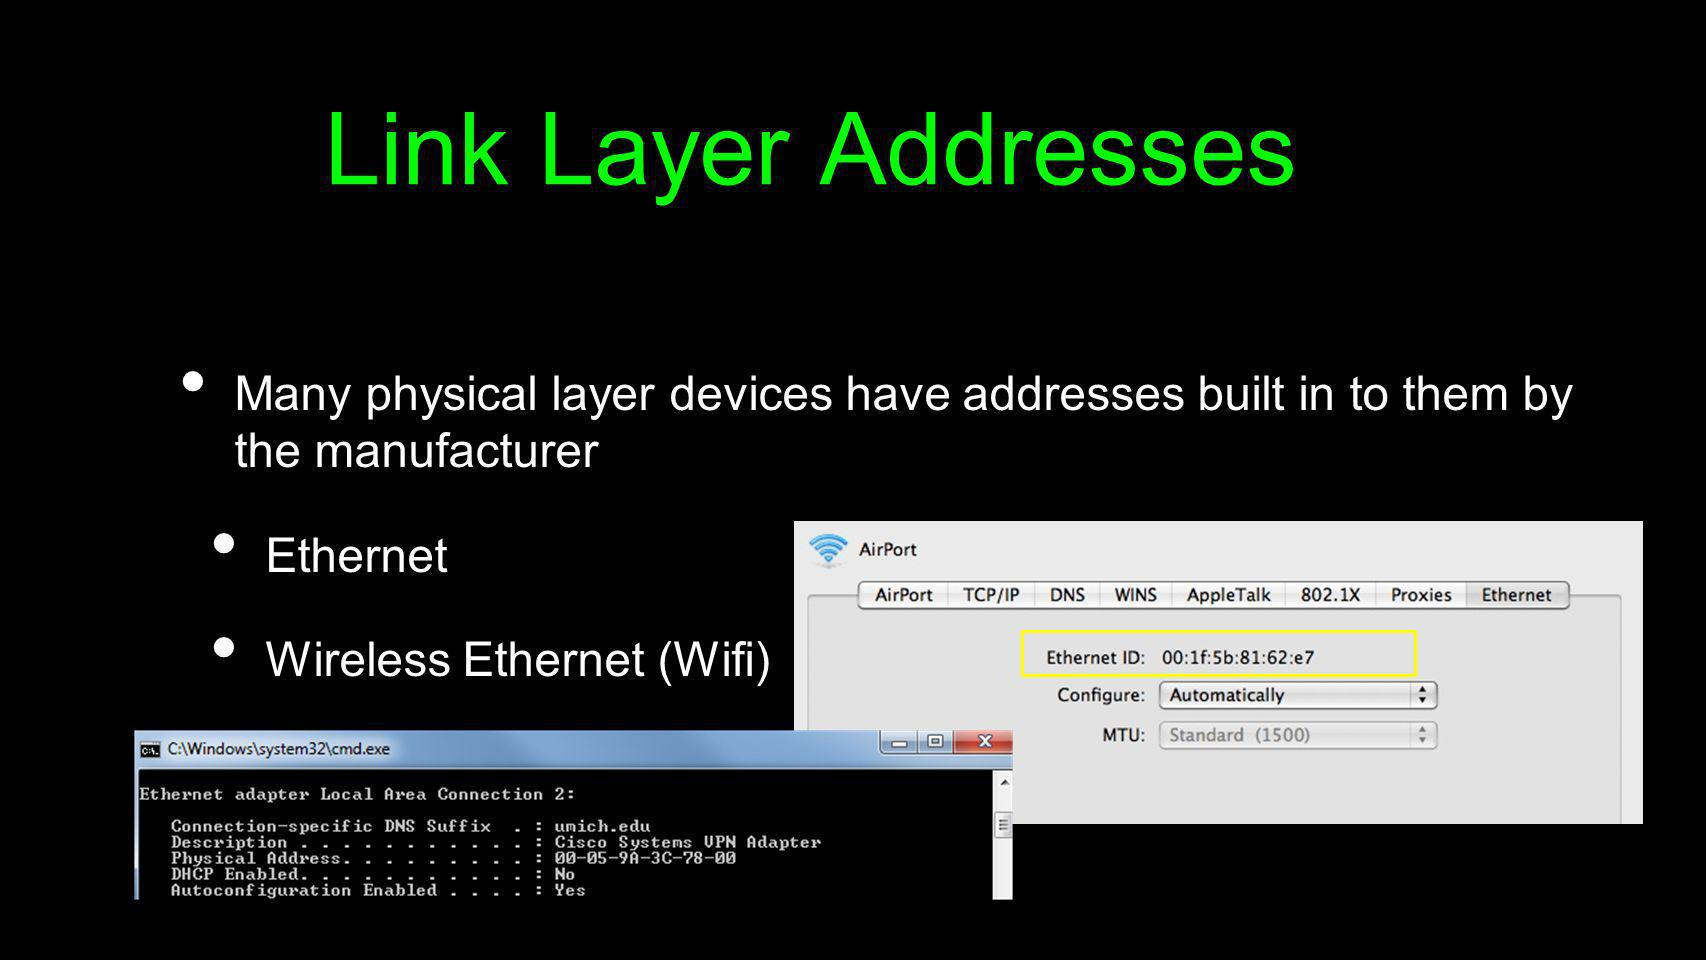 Link Layer AddressesMany physical layer devices have addresses built in to them by the manufacturer.